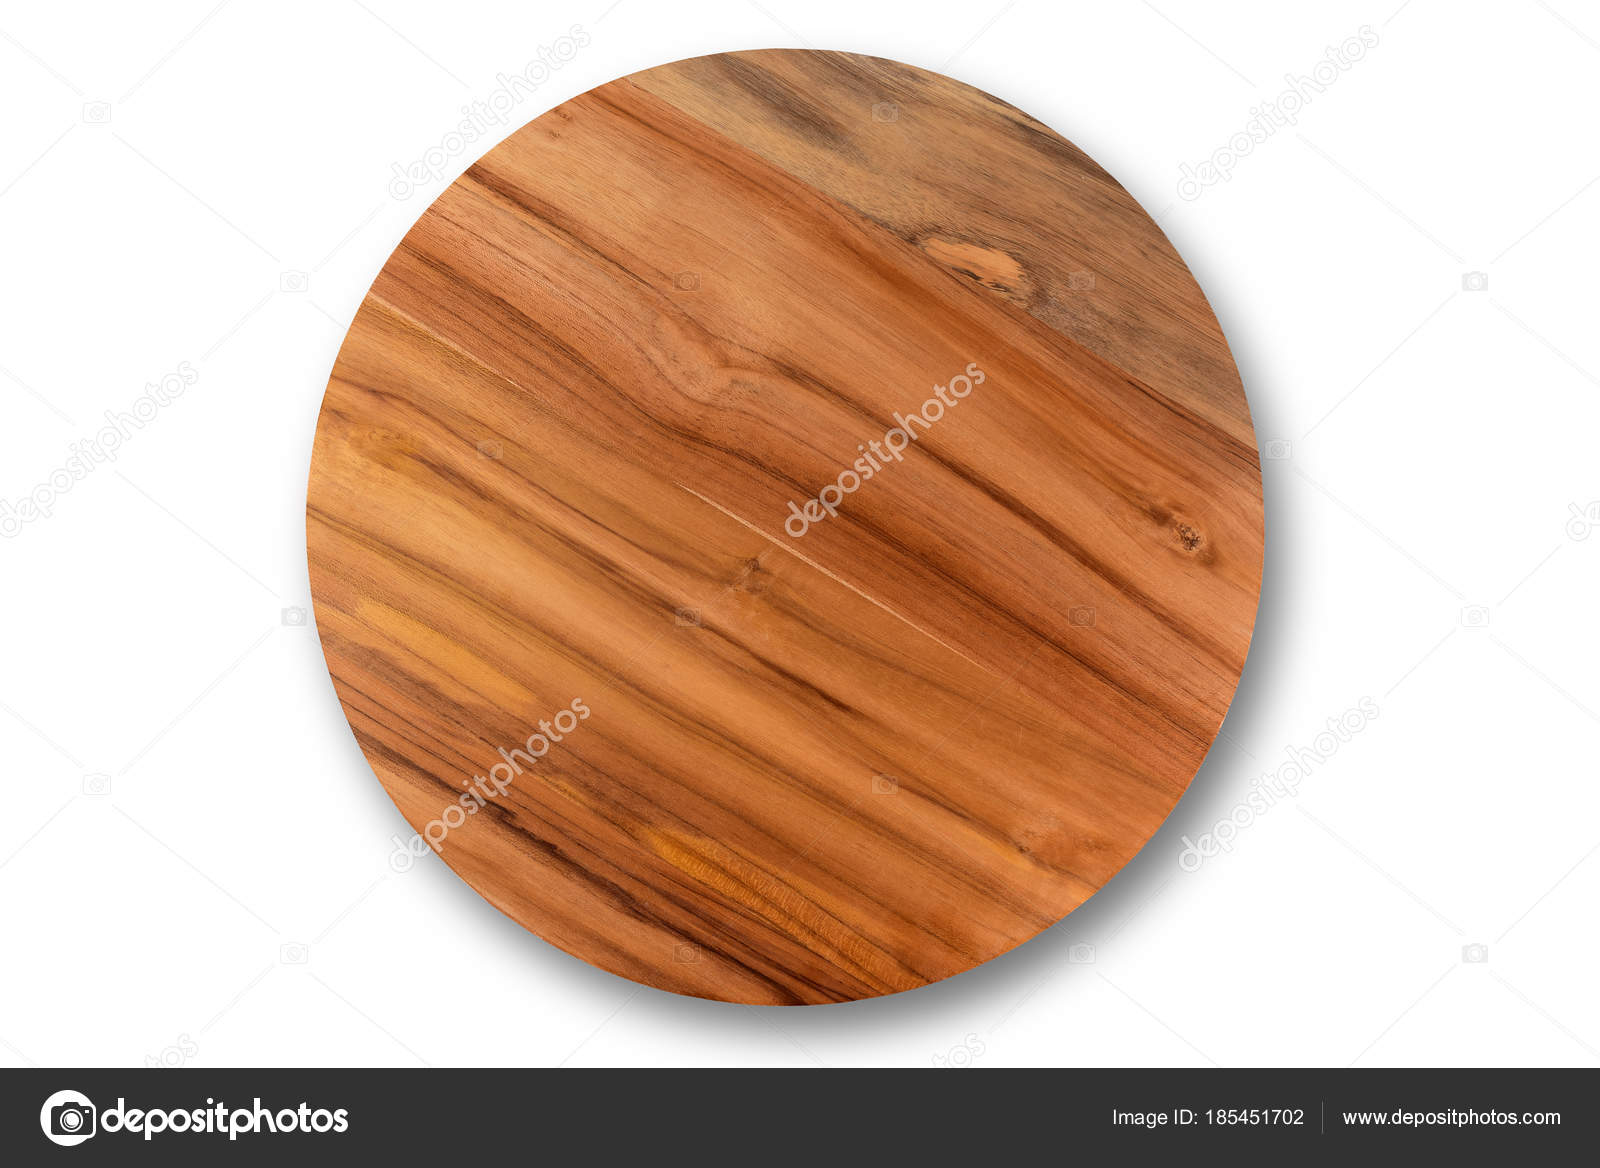 Wooden Cutting Board Isolated White Background Stock Photo C Mkpk 185451702